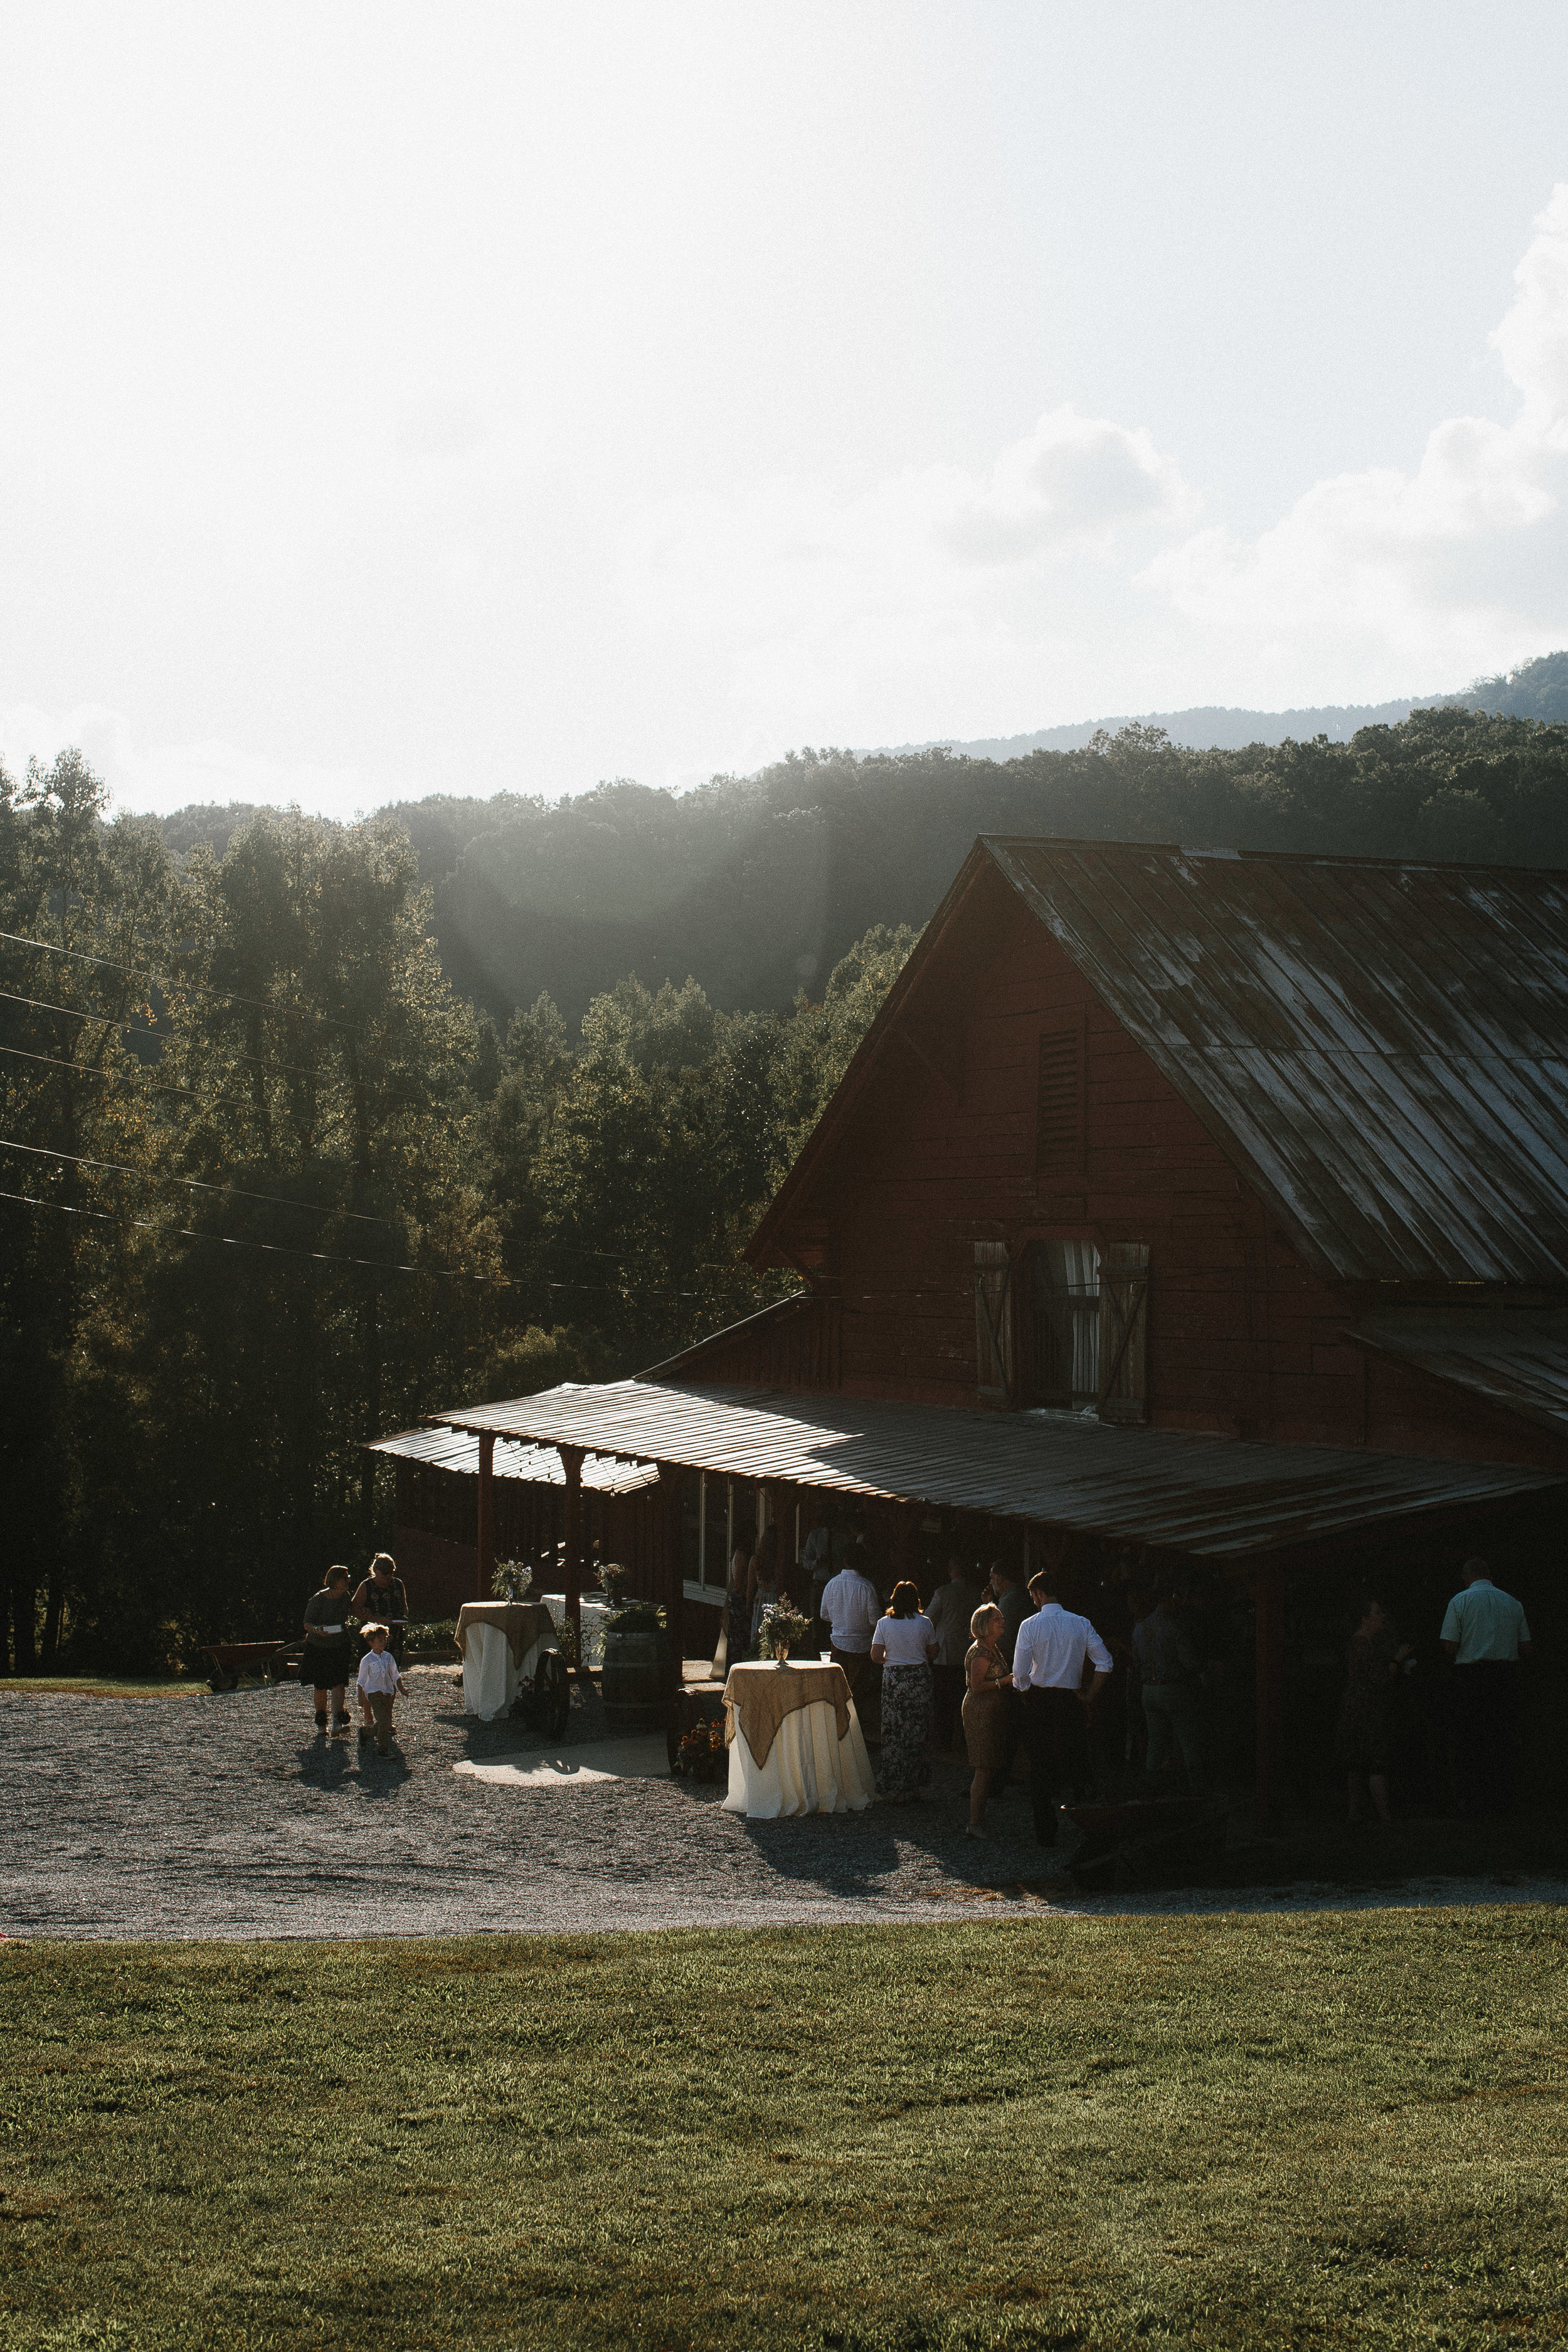 cleveland_georgia_mountain_laurel_farm_natural_classic_timeless_documentary_candid_wedding_emotional_photojournalism_river_west_1590.jpg